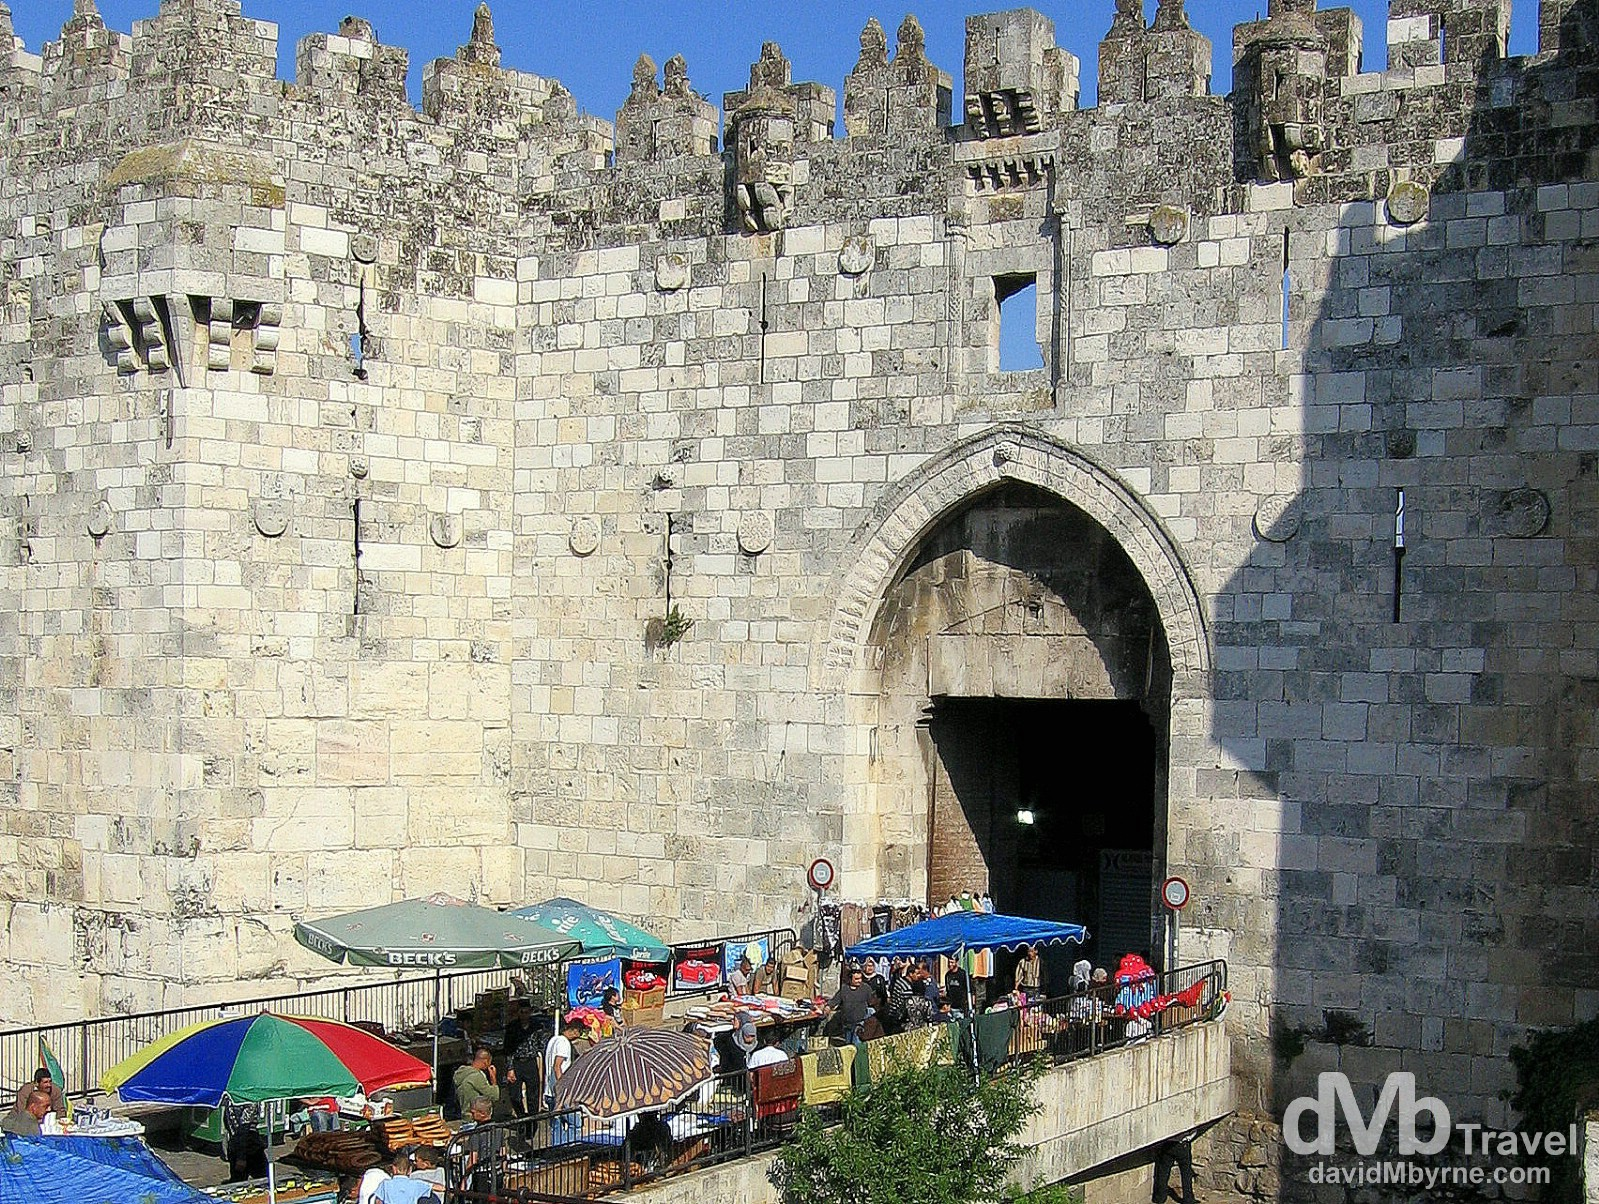 Market stalls outside the Old City wall in Jerusalem, Israel. May 2, 2008.